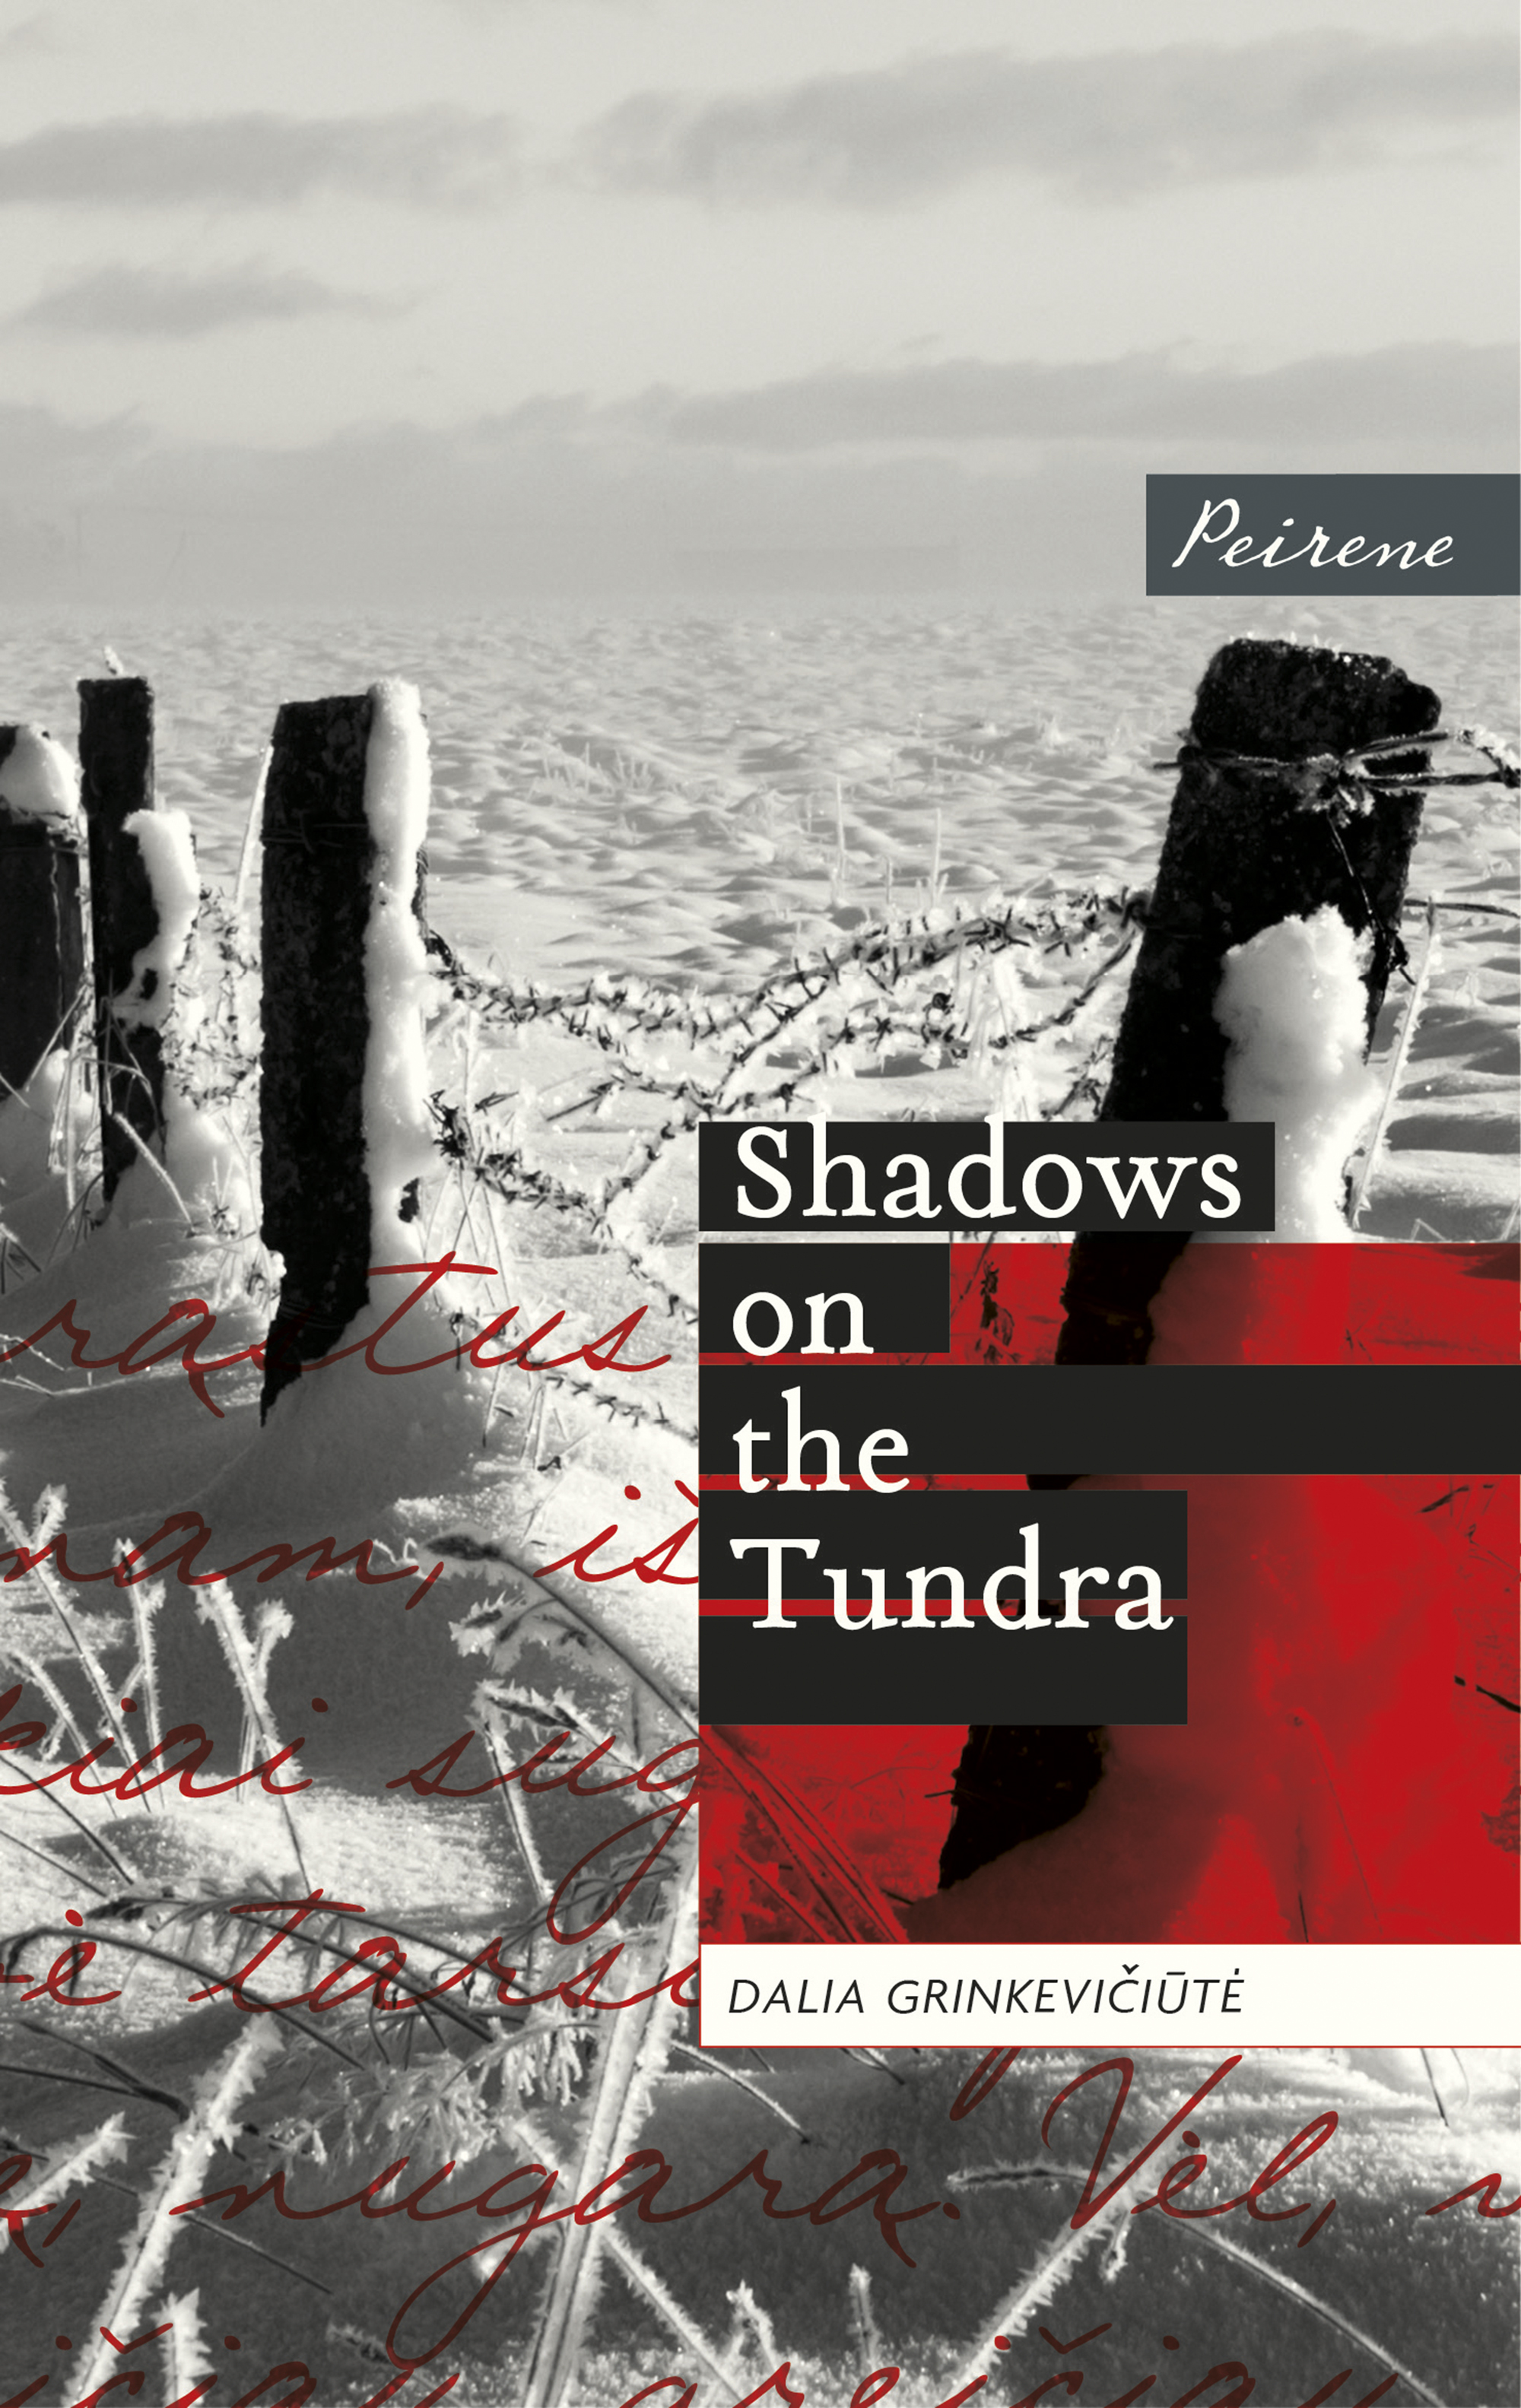 Shadows On The Tundra Peirene Press Structured Wiring Books